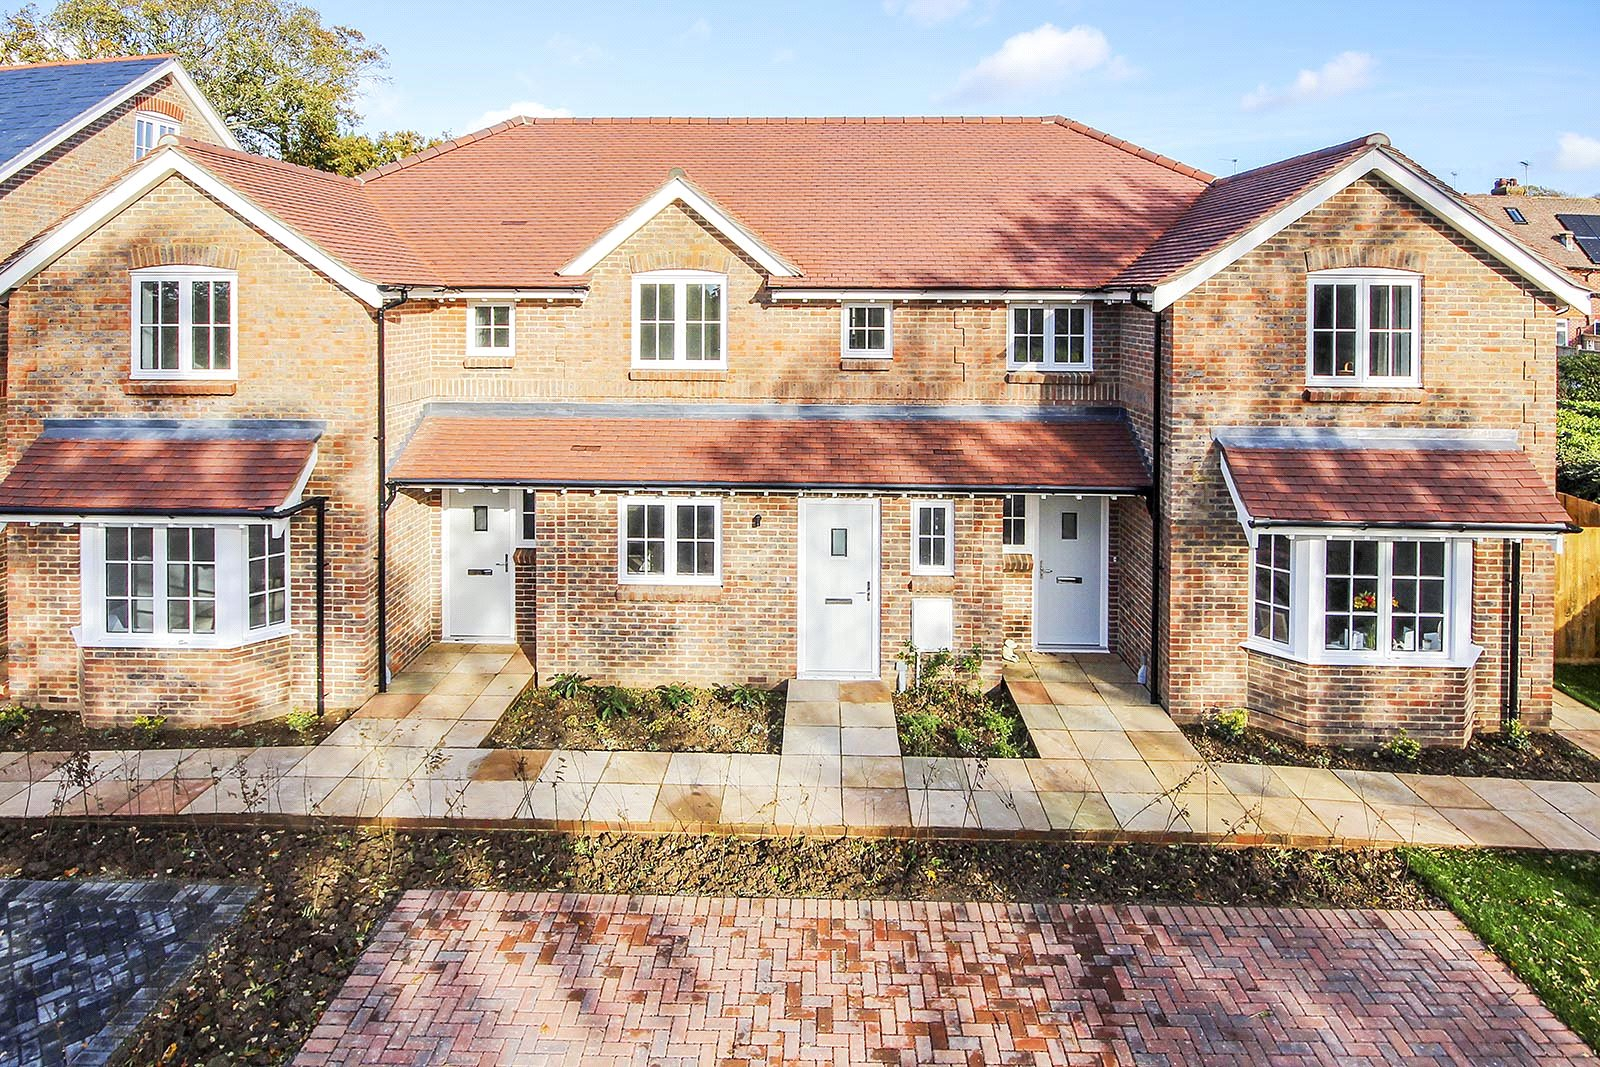 2 bed house for sale in Brickyard Cottages Long Furlong, Clapham,, BN13